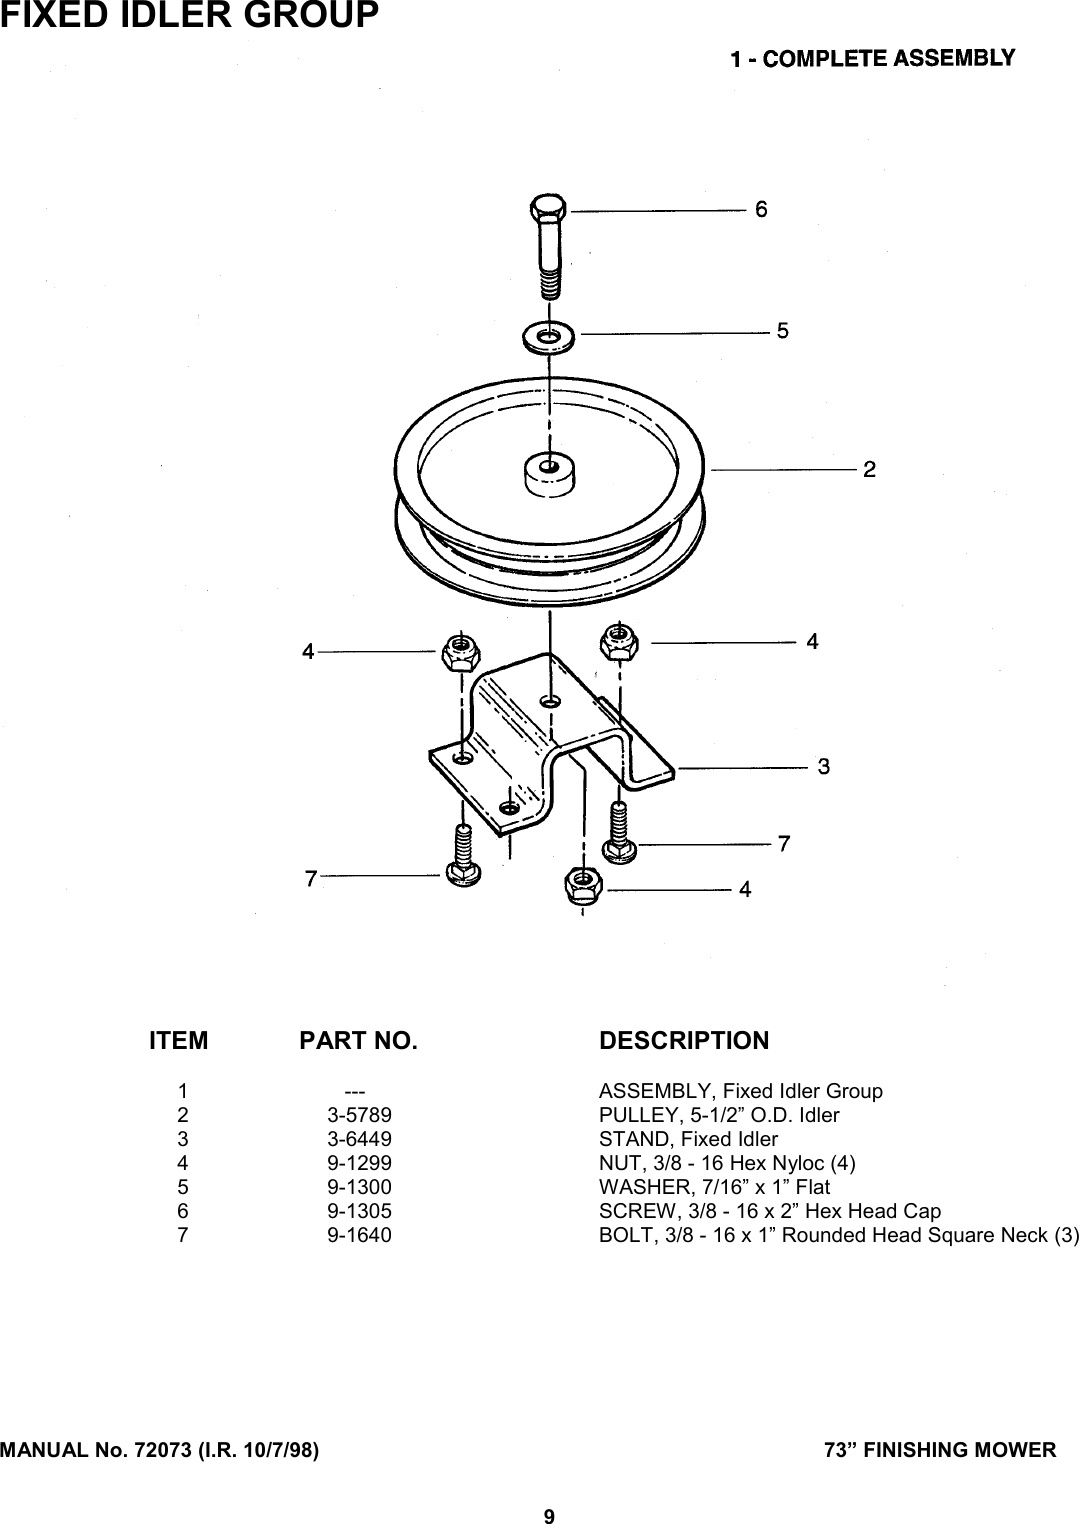 Snapper Finishing Mower Users Manual Parts For Diagram Page 9 Of 12